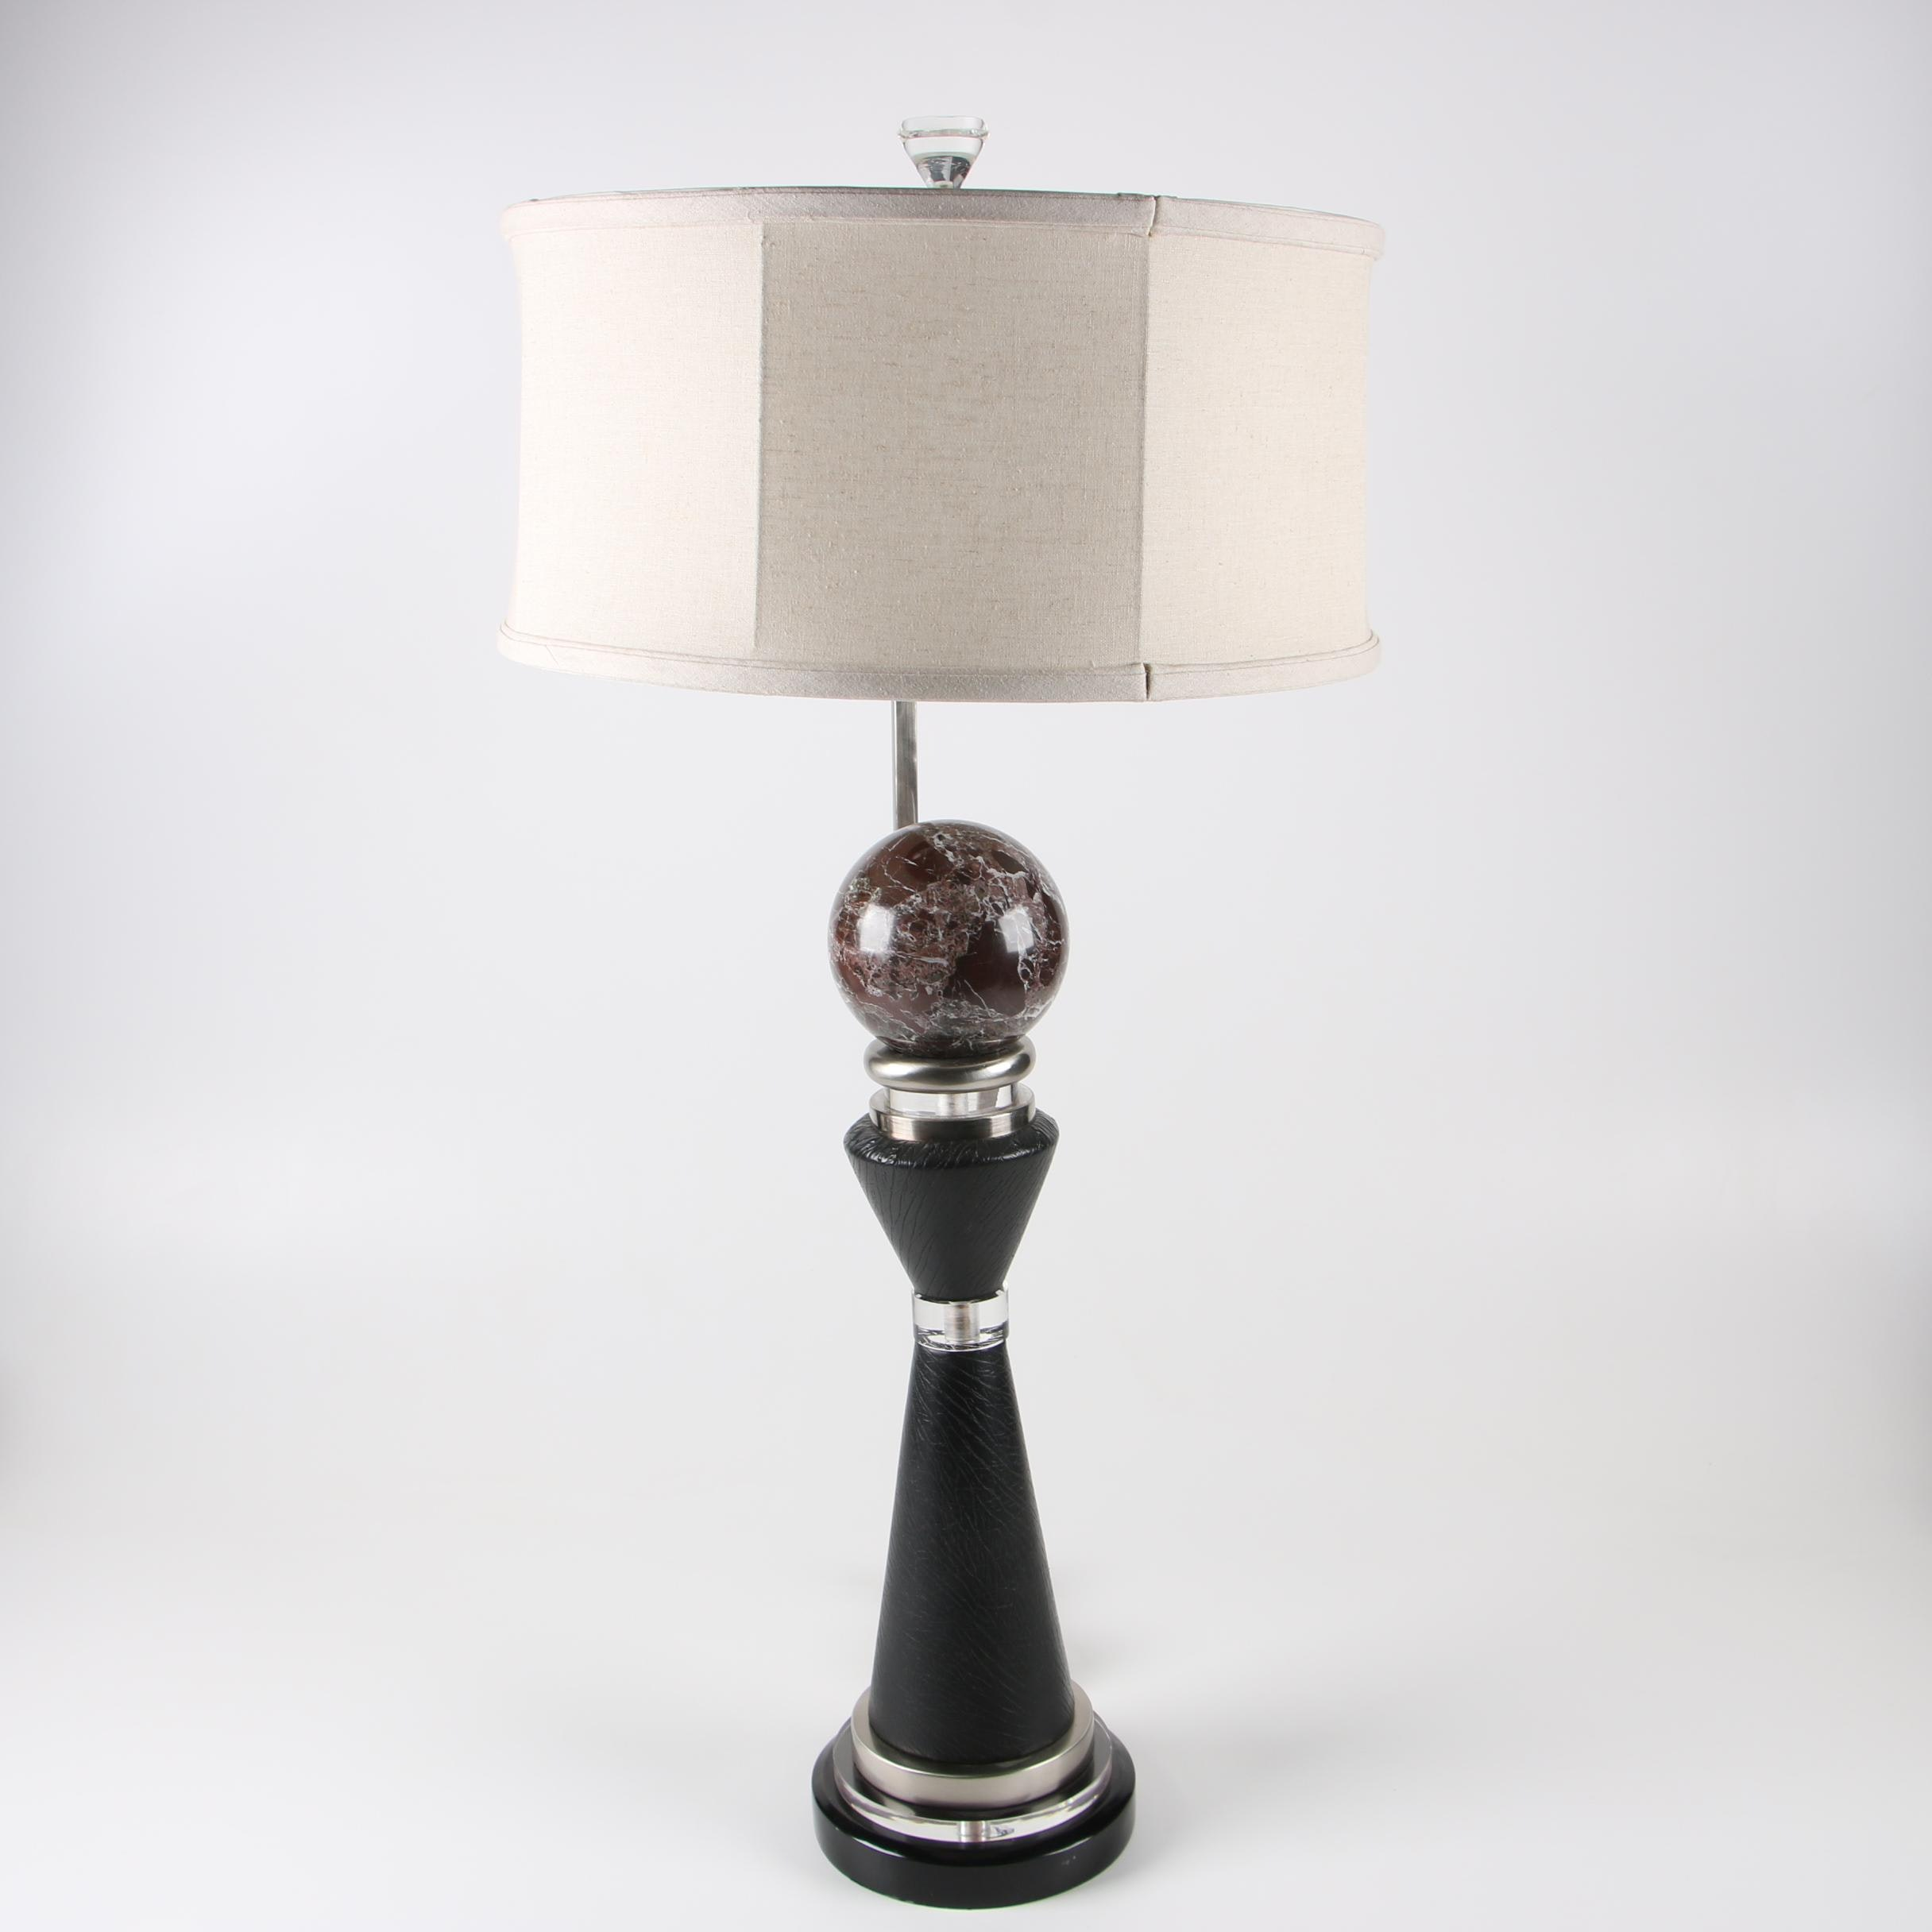 John richard lighting Desk Ebthcom Johnrichard Post Modernist Table Lamp With Fabric Shade Ebth